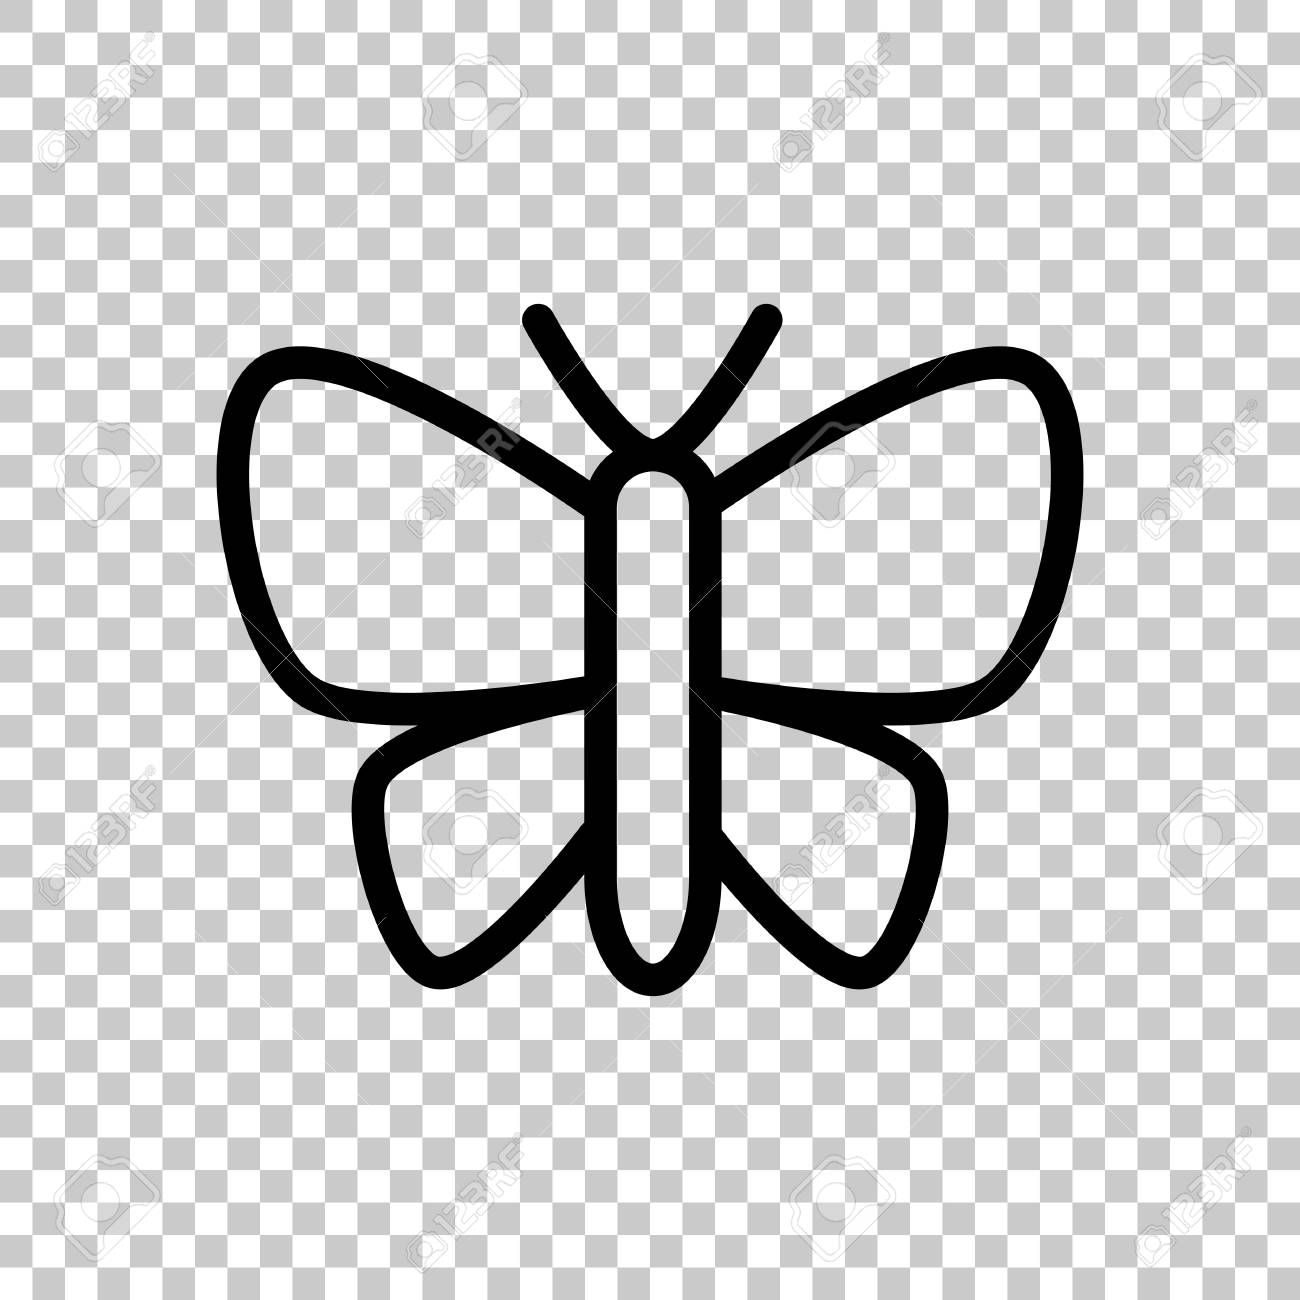 Simple butterfly logo, linear outline icon. Black symbol